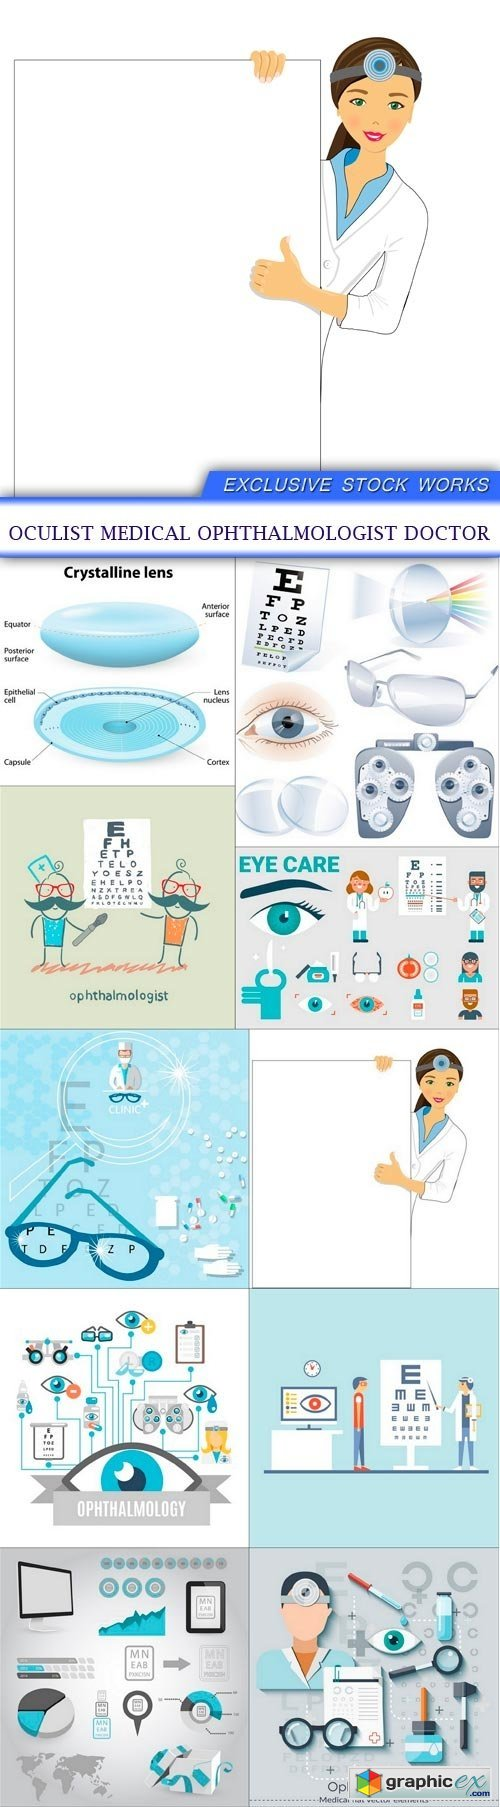 Oculist medical ophthalmologist doctor 10X EPS